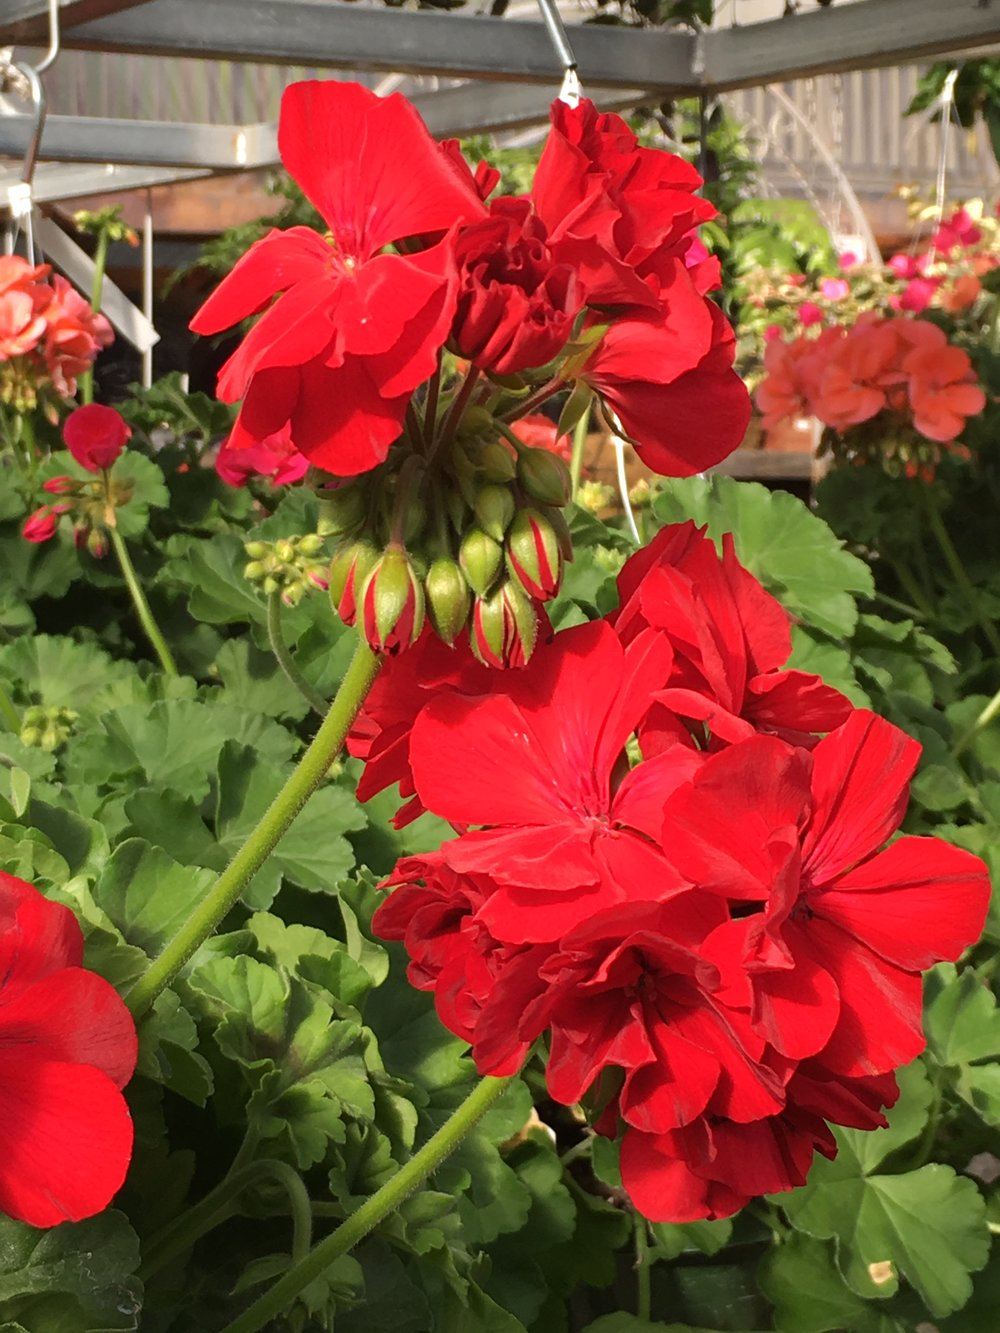 One of the most beloved annuals., bold  red, geraniums, are hard to beat. Drought tolerant, showy, and strong bloomers, these annuals give a big pop of color all season.